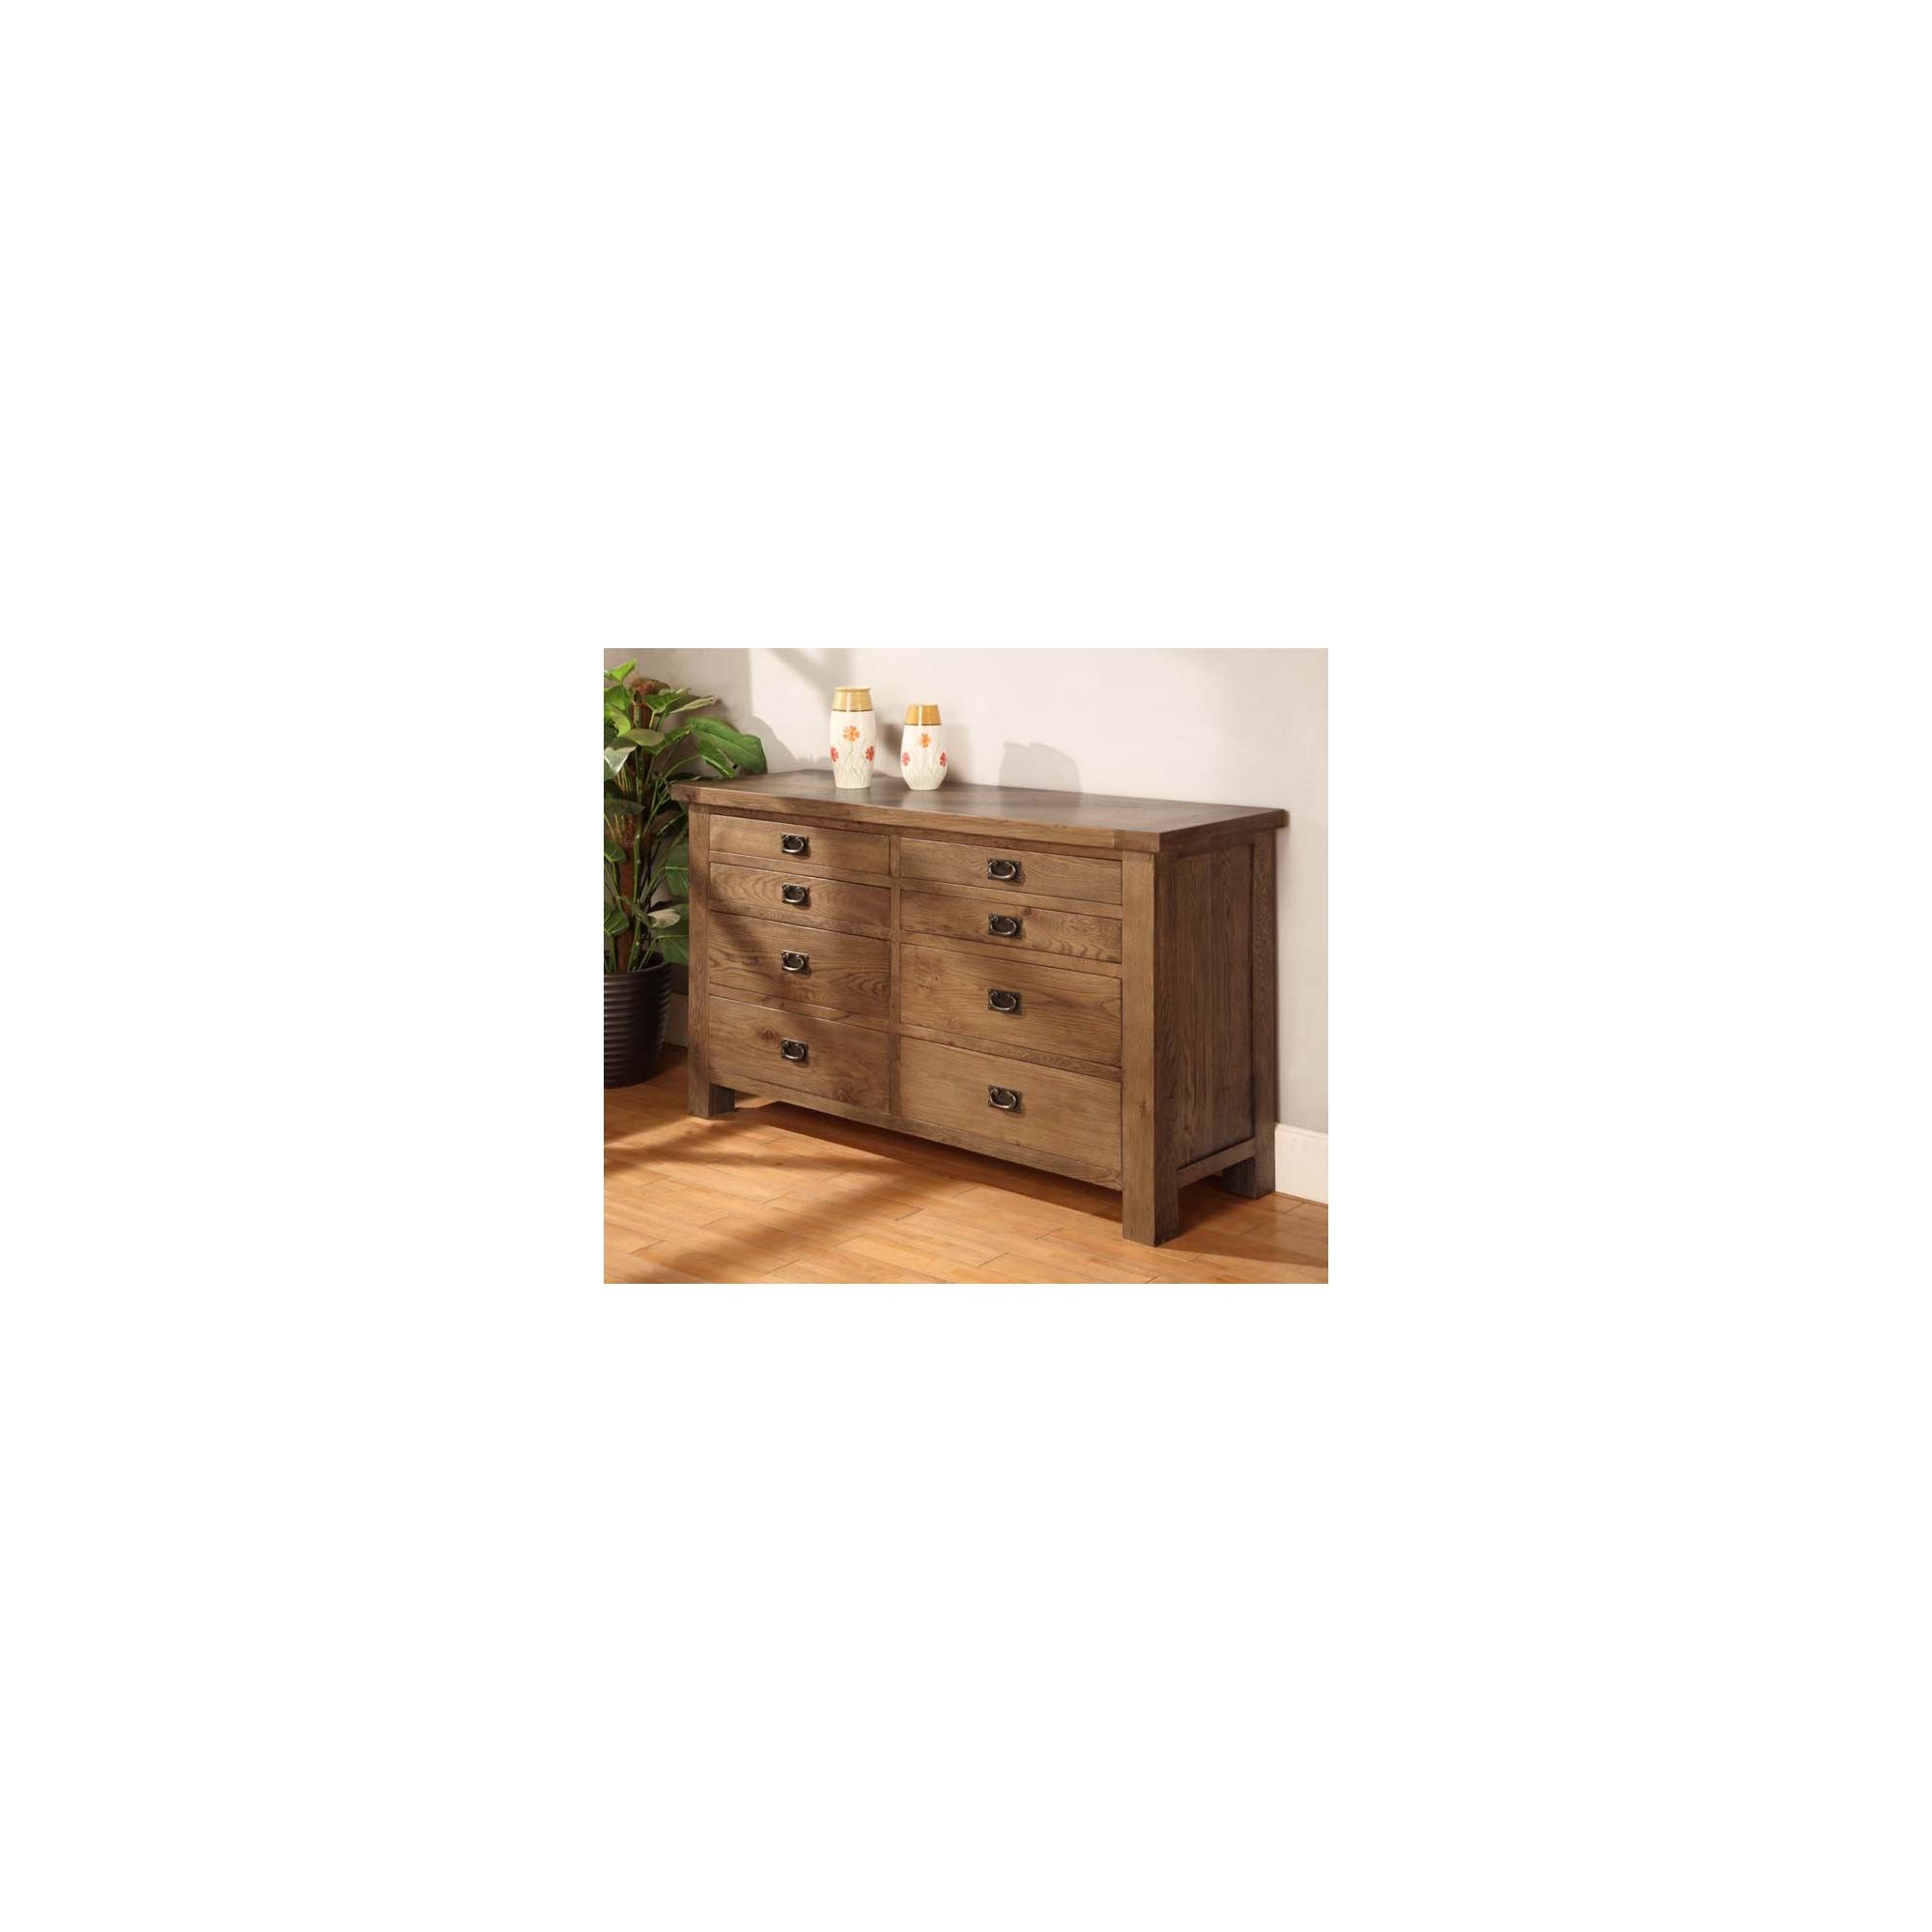 Hawkshead Brooklyn Long Drawer Chest in Rich Patina at Tescos Direct